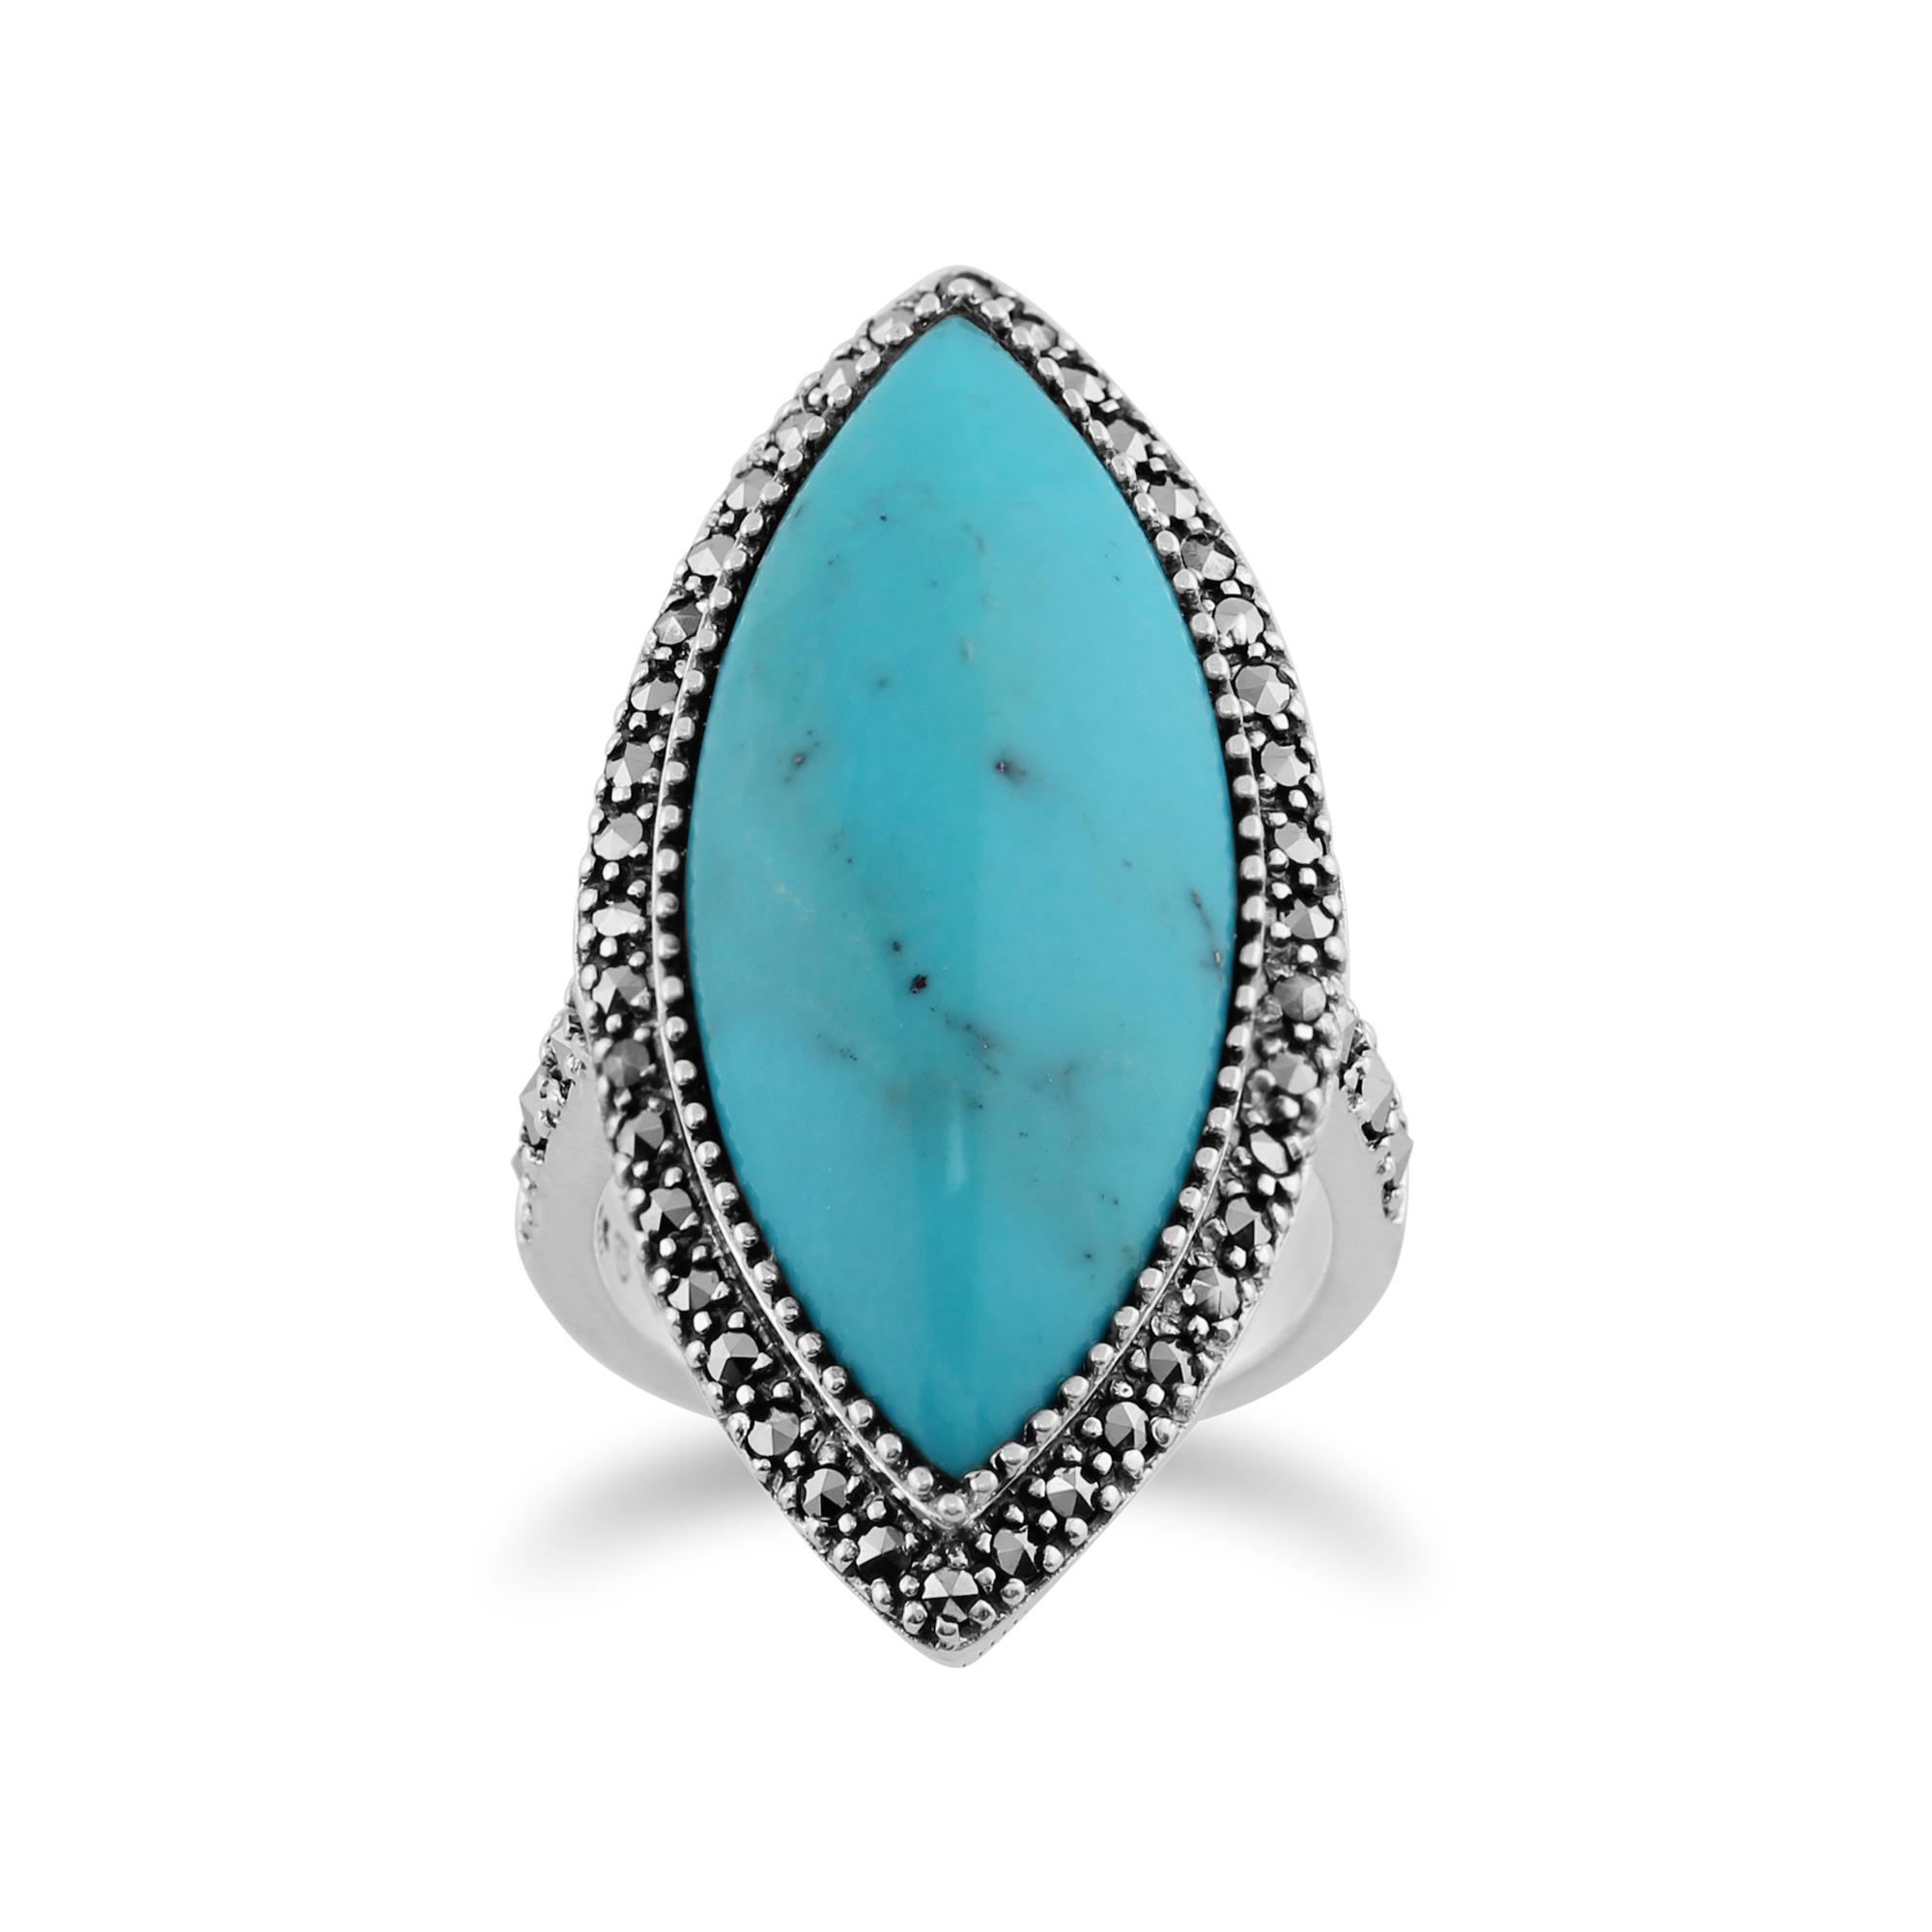 Gemondo 925 Sterling Silver 13ct Turquoise & Marcasite Statement Ring